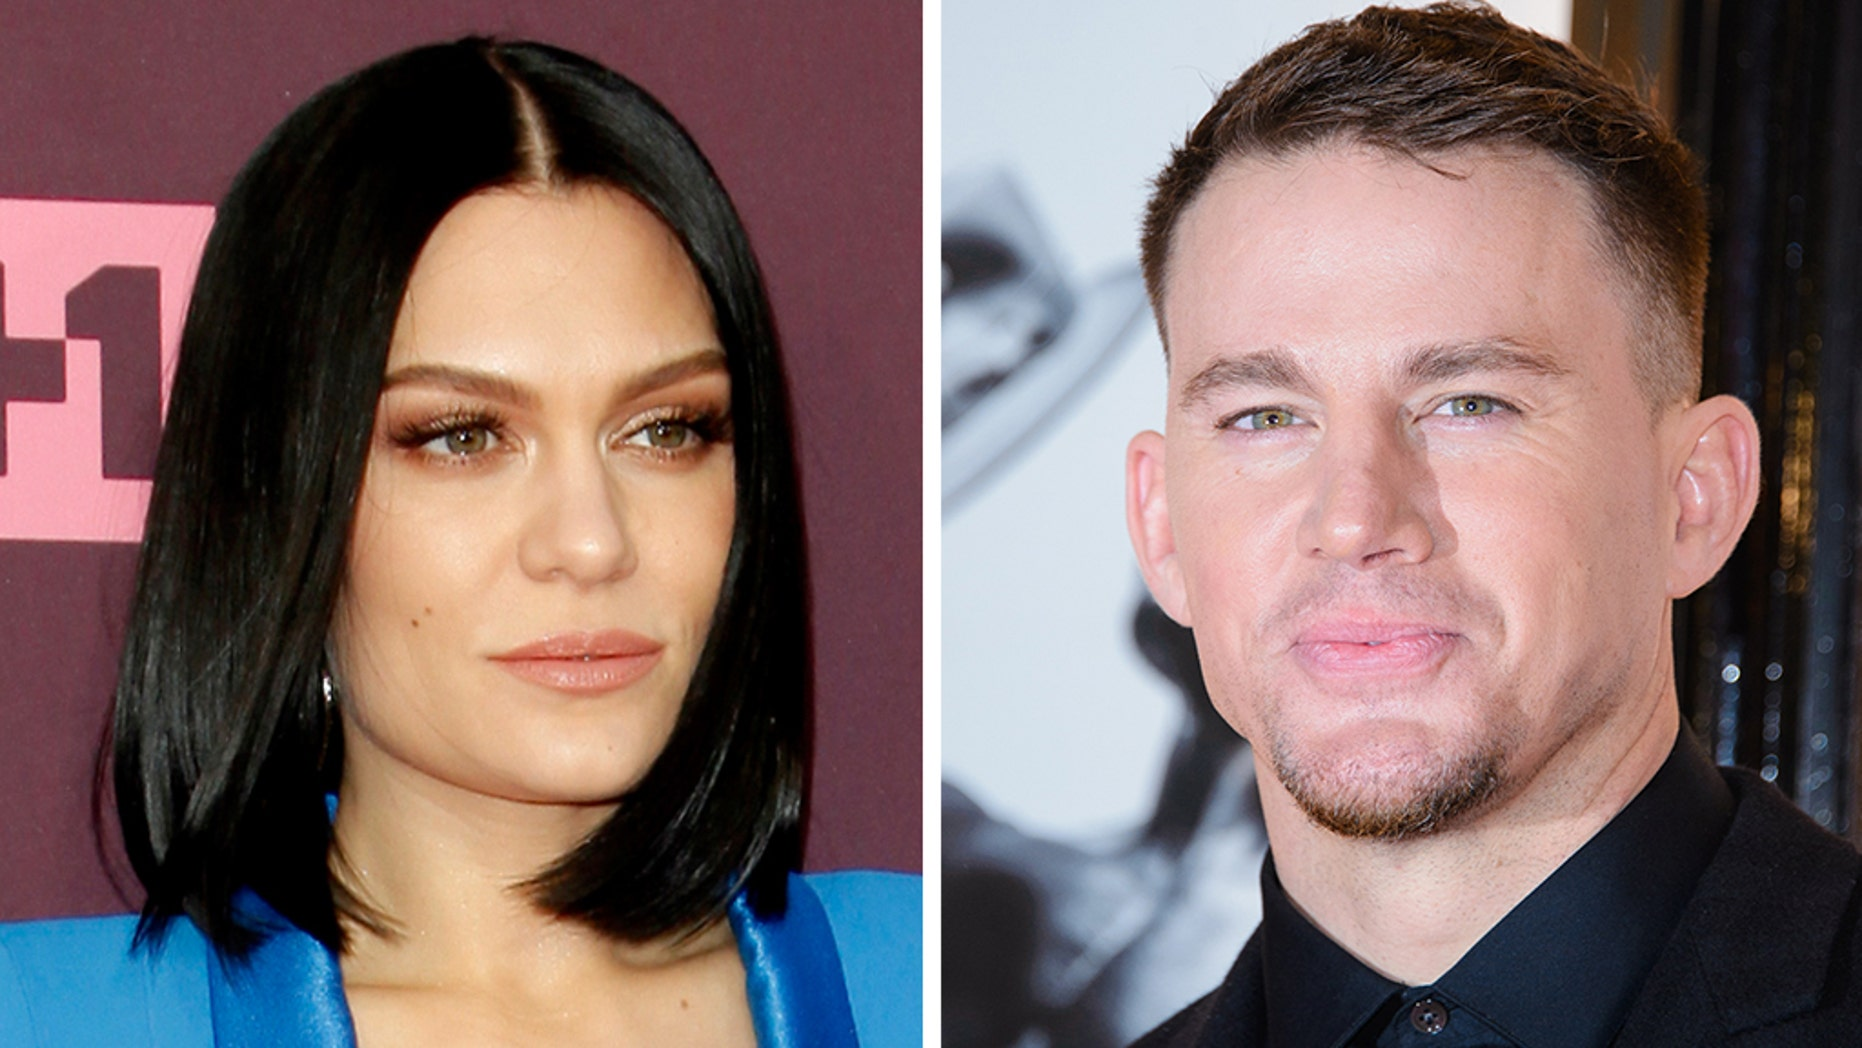 Channing Tatum took to Instagram with a sweet birthday message for girlfriend Jessie J.